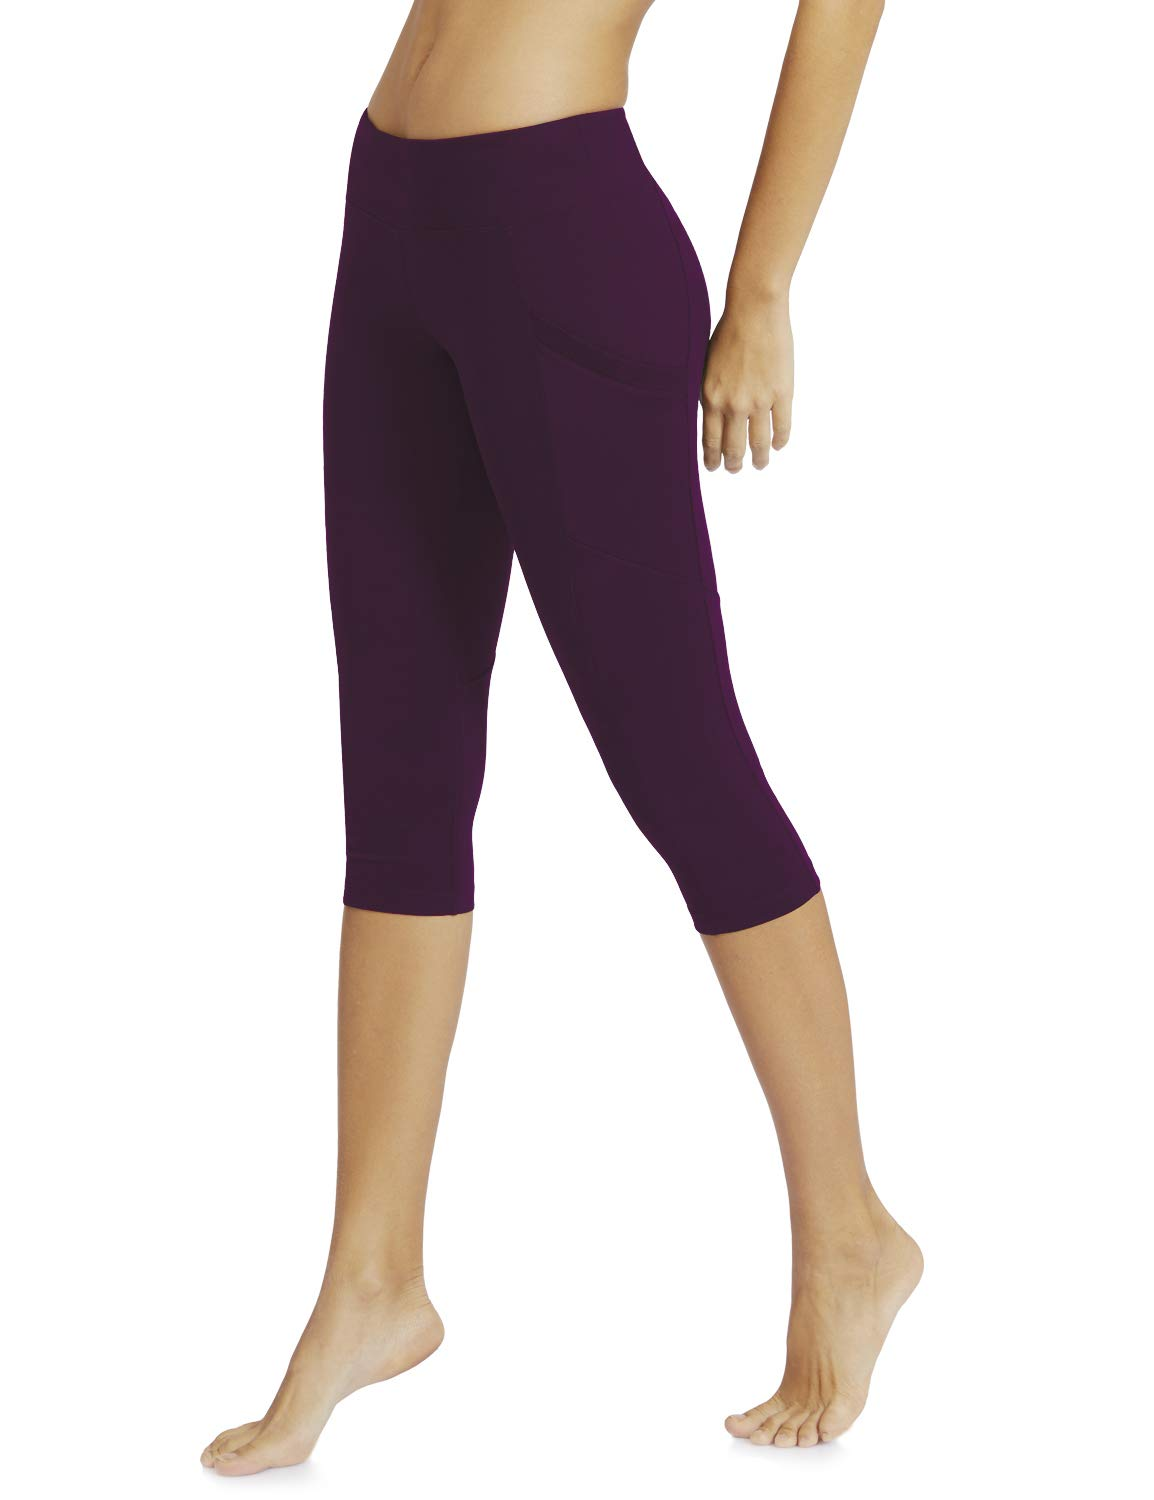 e7d26df0a9f2a Baleaf Women's Yoga Workout Capris Leggings Side Pocket for 5.5